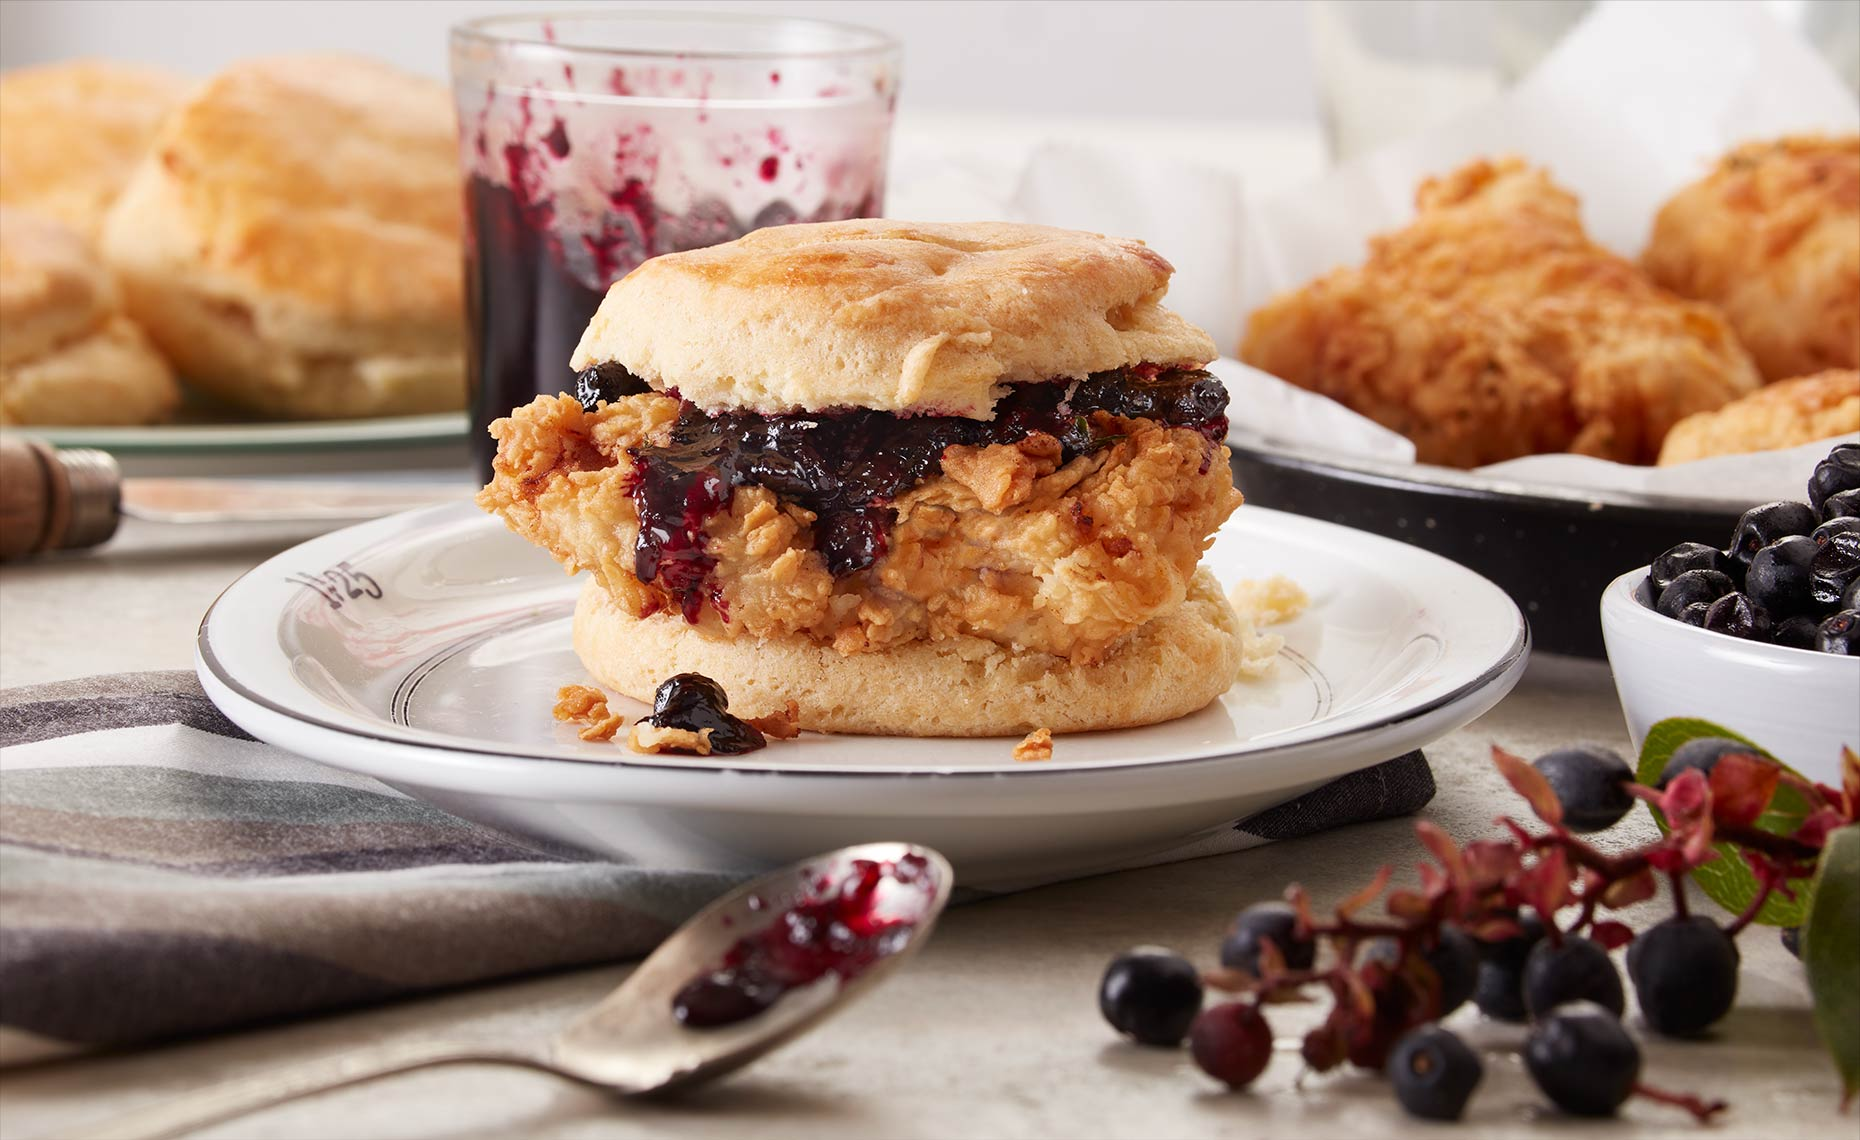 meat-photographers-roaster-chicken-biscuit-salal-jelly-63